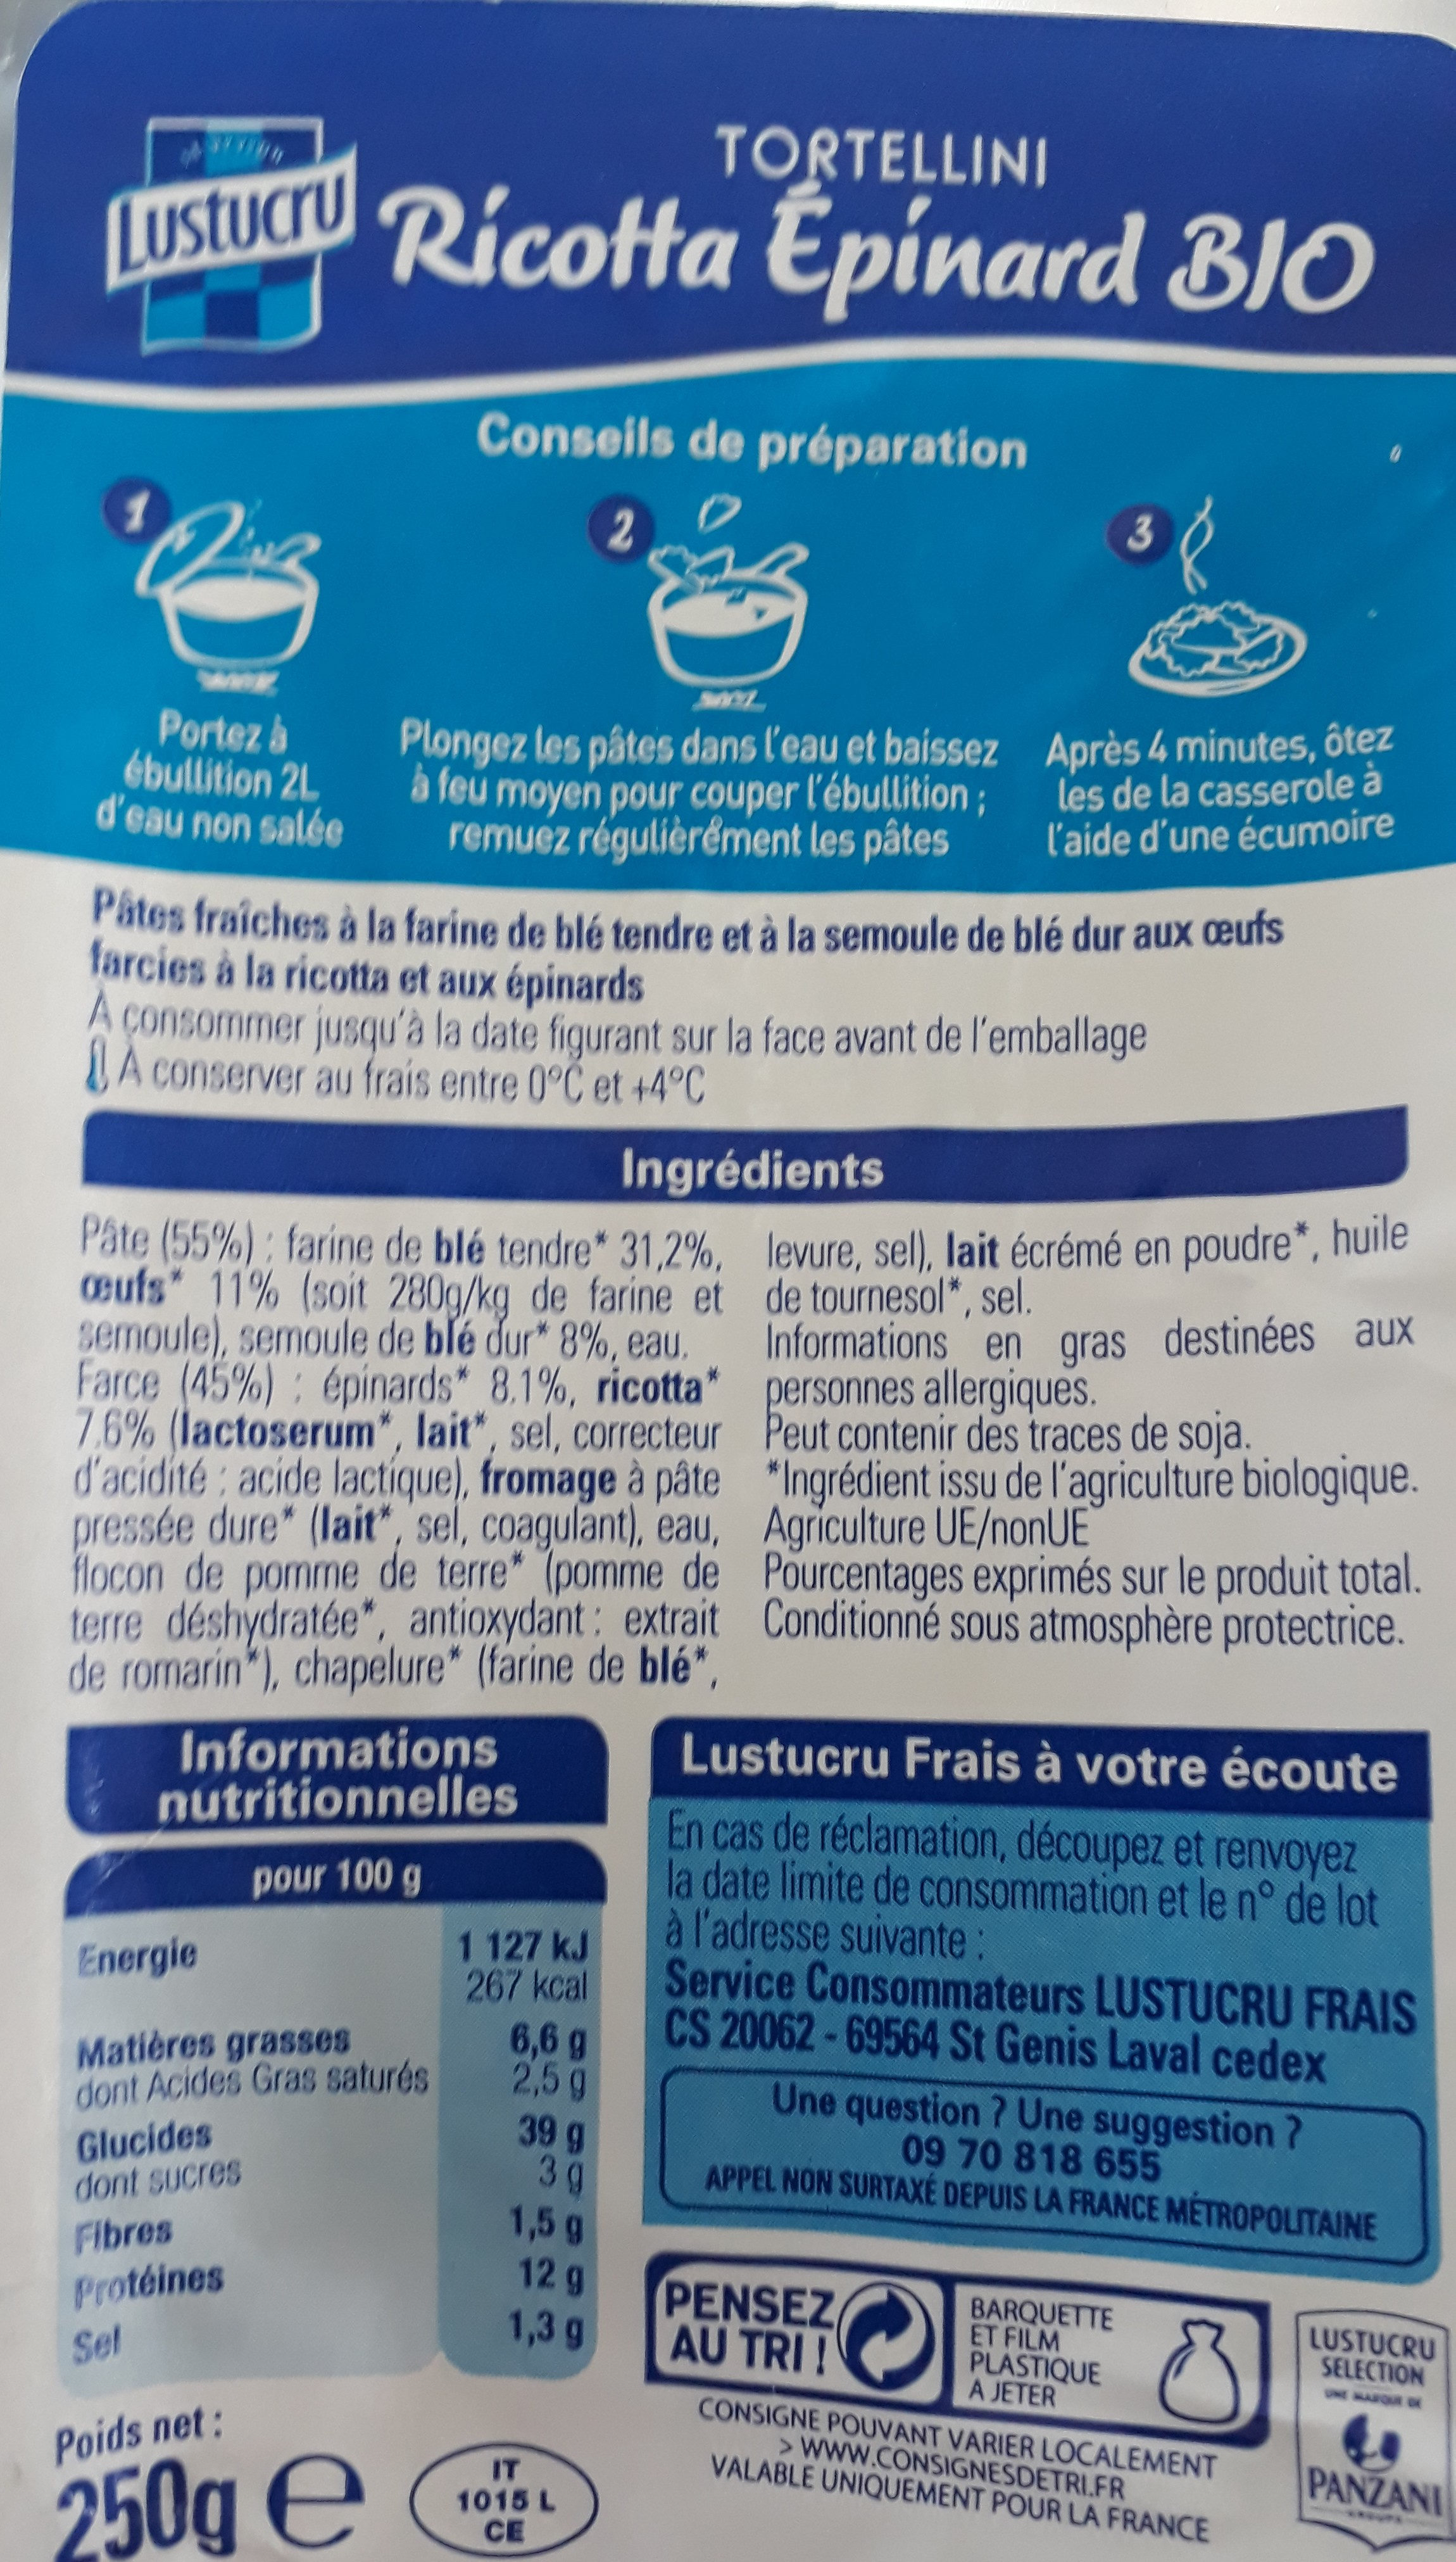 Tortellini Ricotta Épinards Bio - Nutrition facts